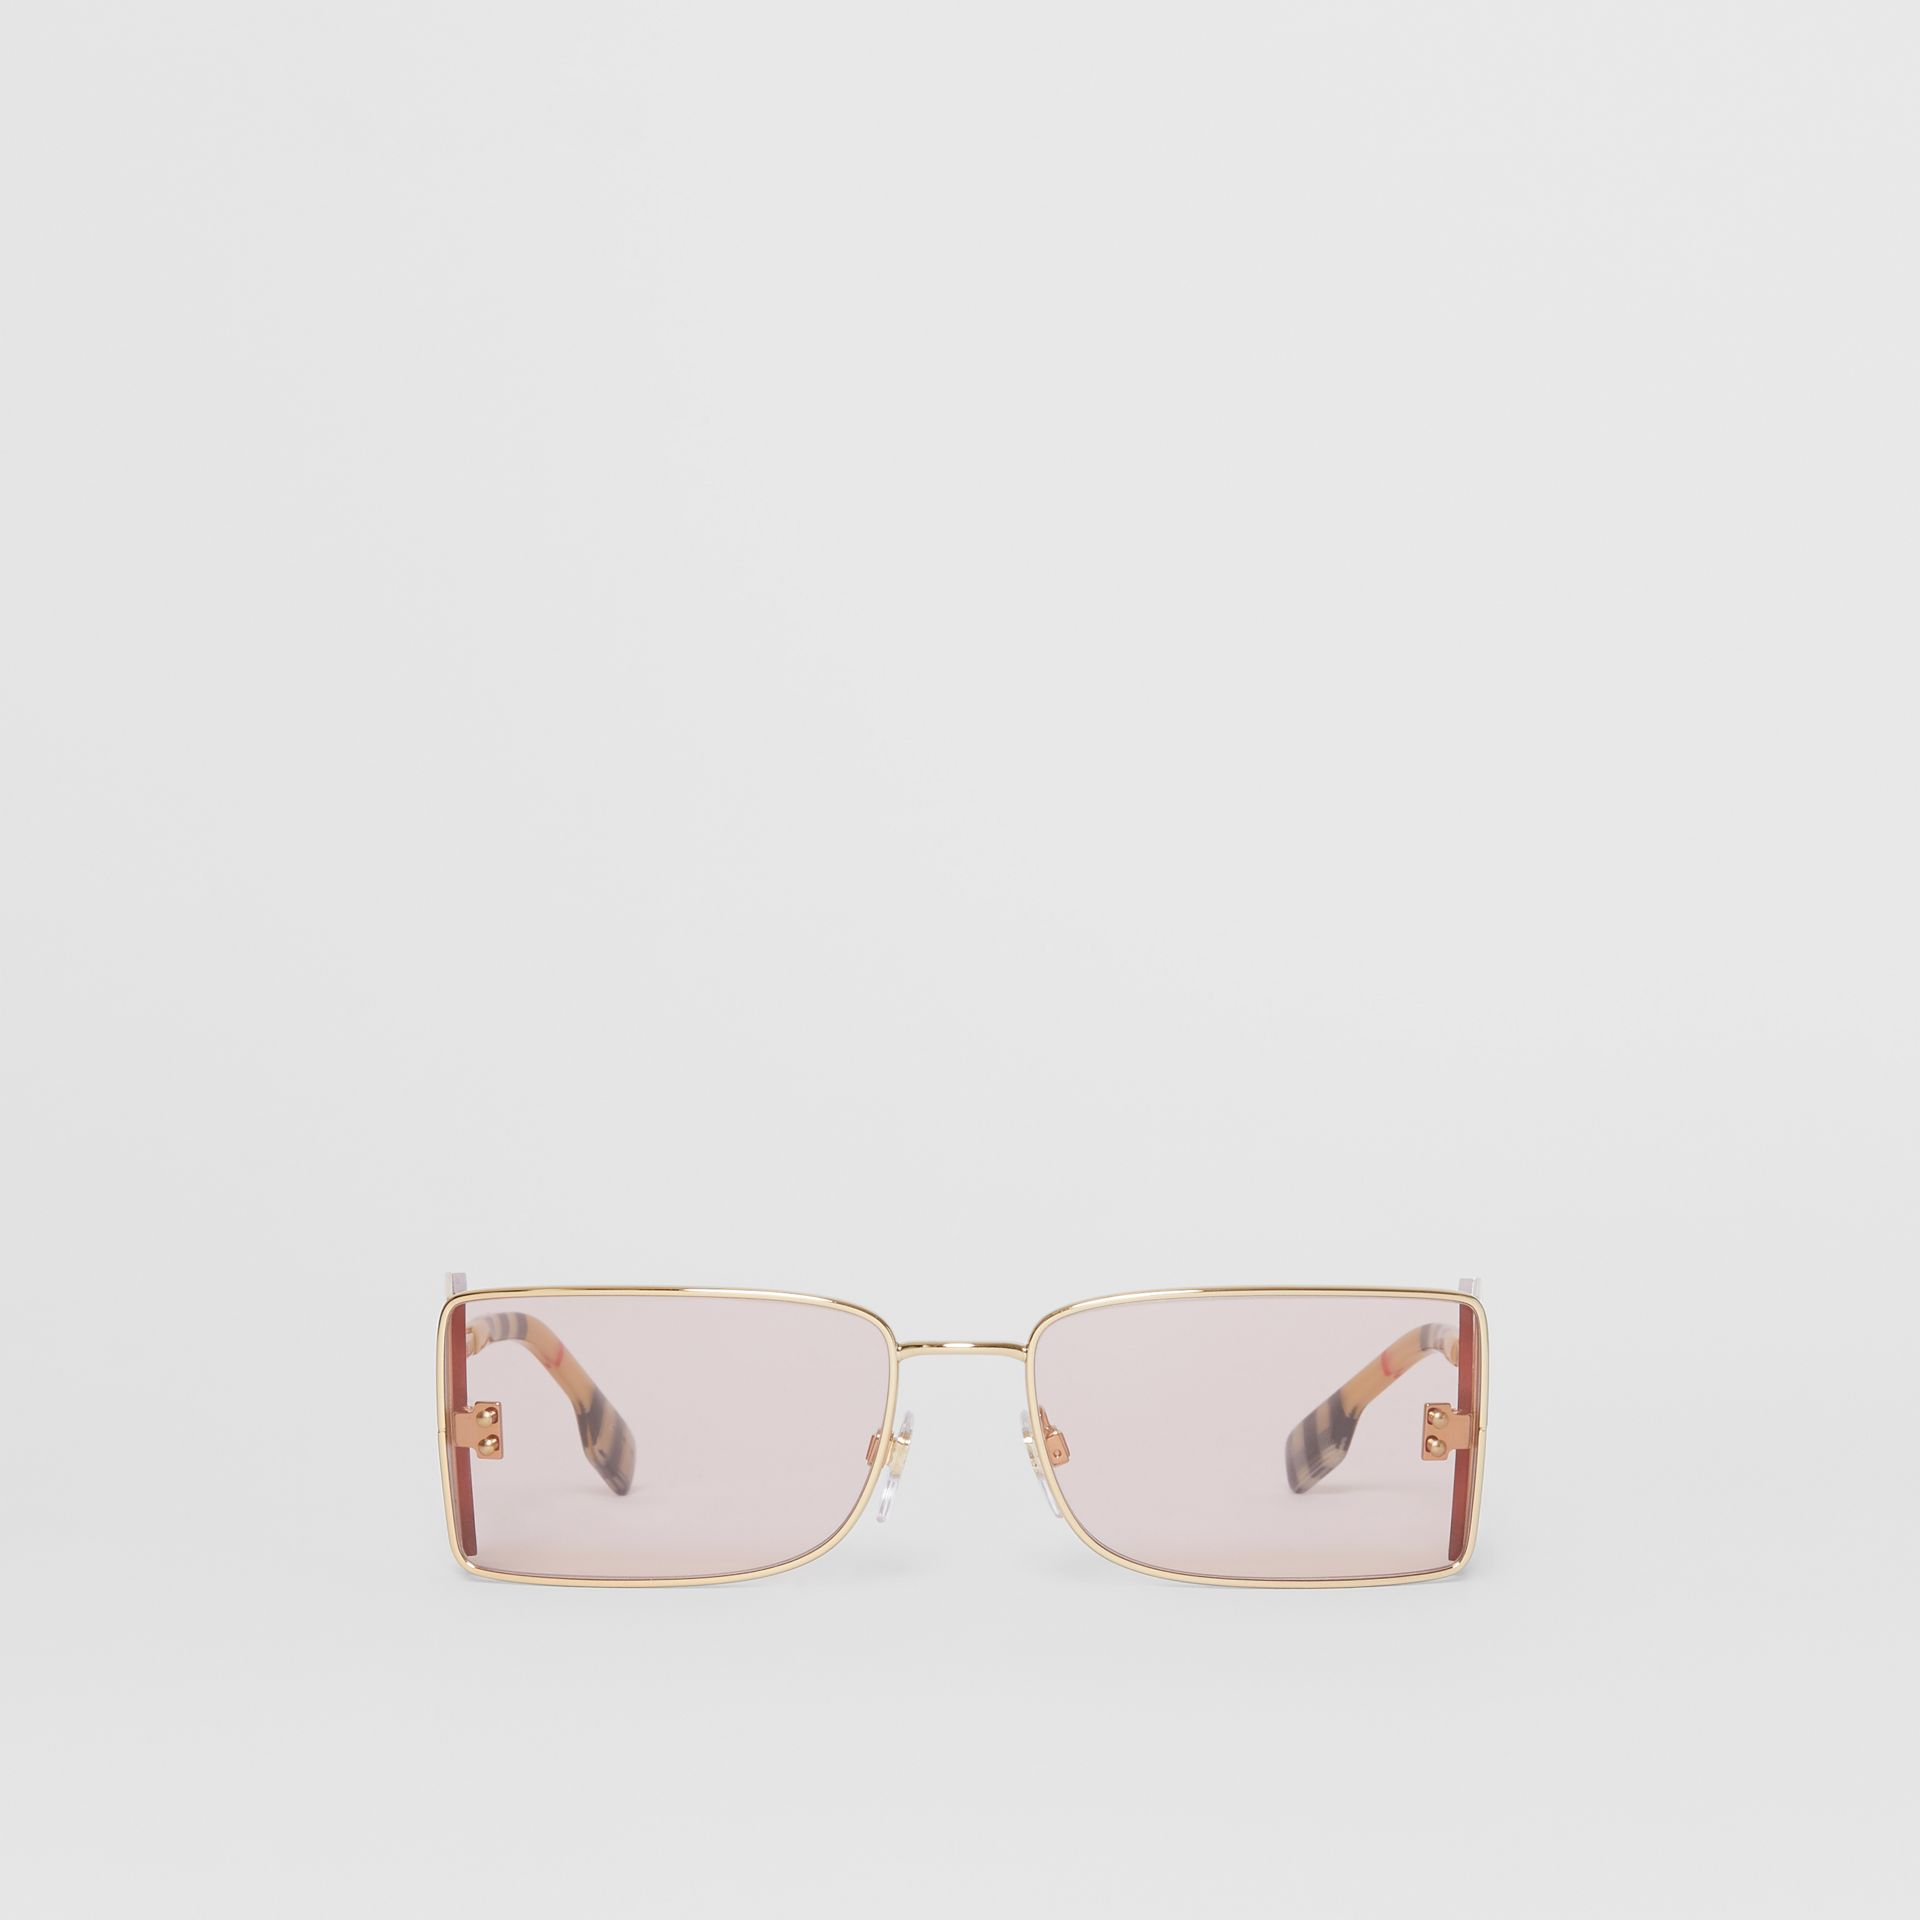 'B' Lens Detail Rectangular Frame Sunglasses in Gold - Women | Burberry - gallery image 0